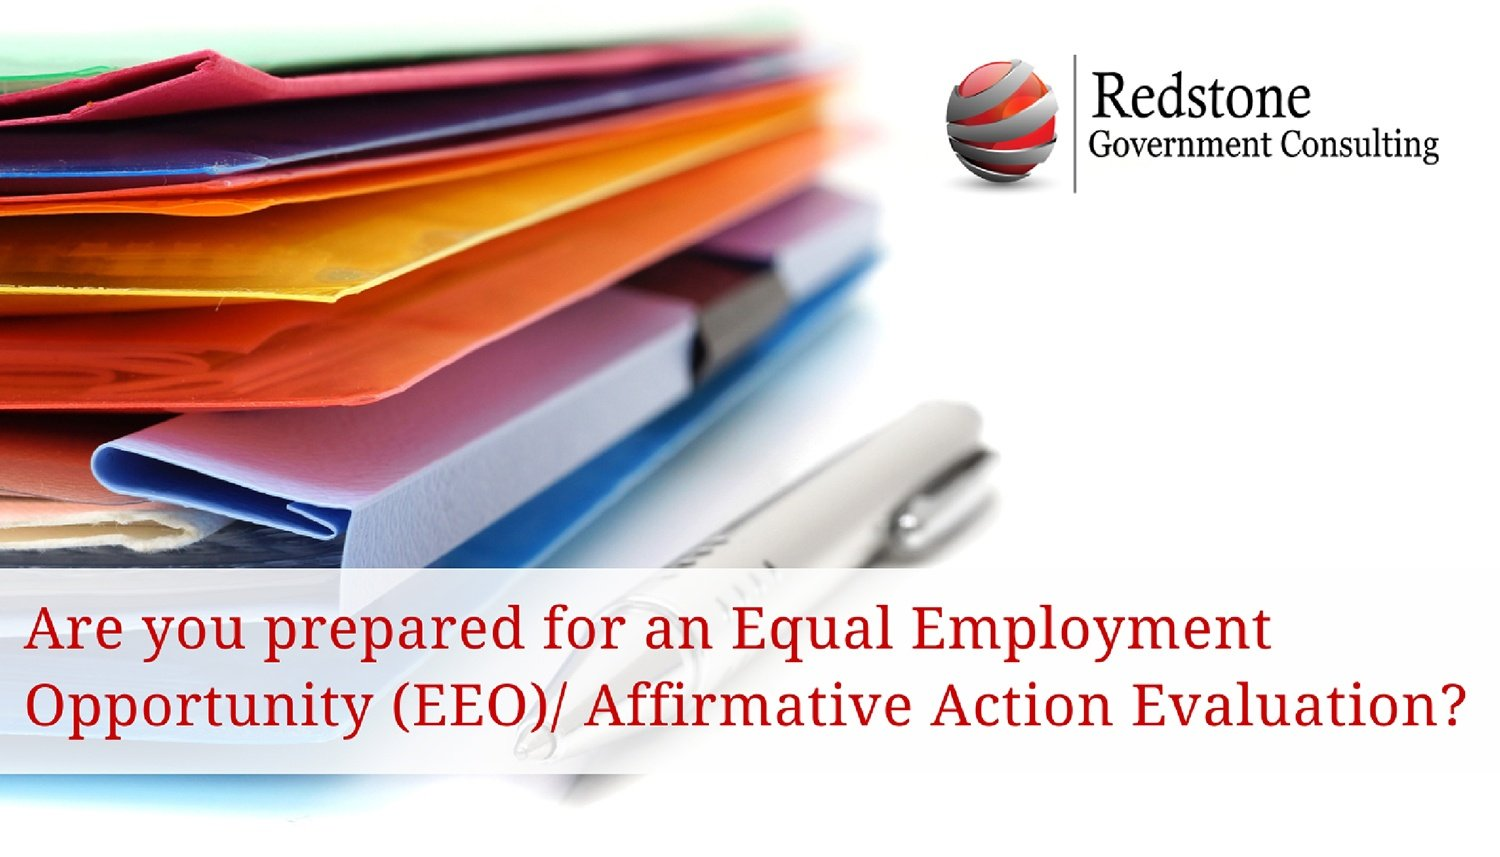 Redstone-Are you prepared for an Equal Employment Opportunity (EEO)2F Affirmative Action Evaluation-.jpg